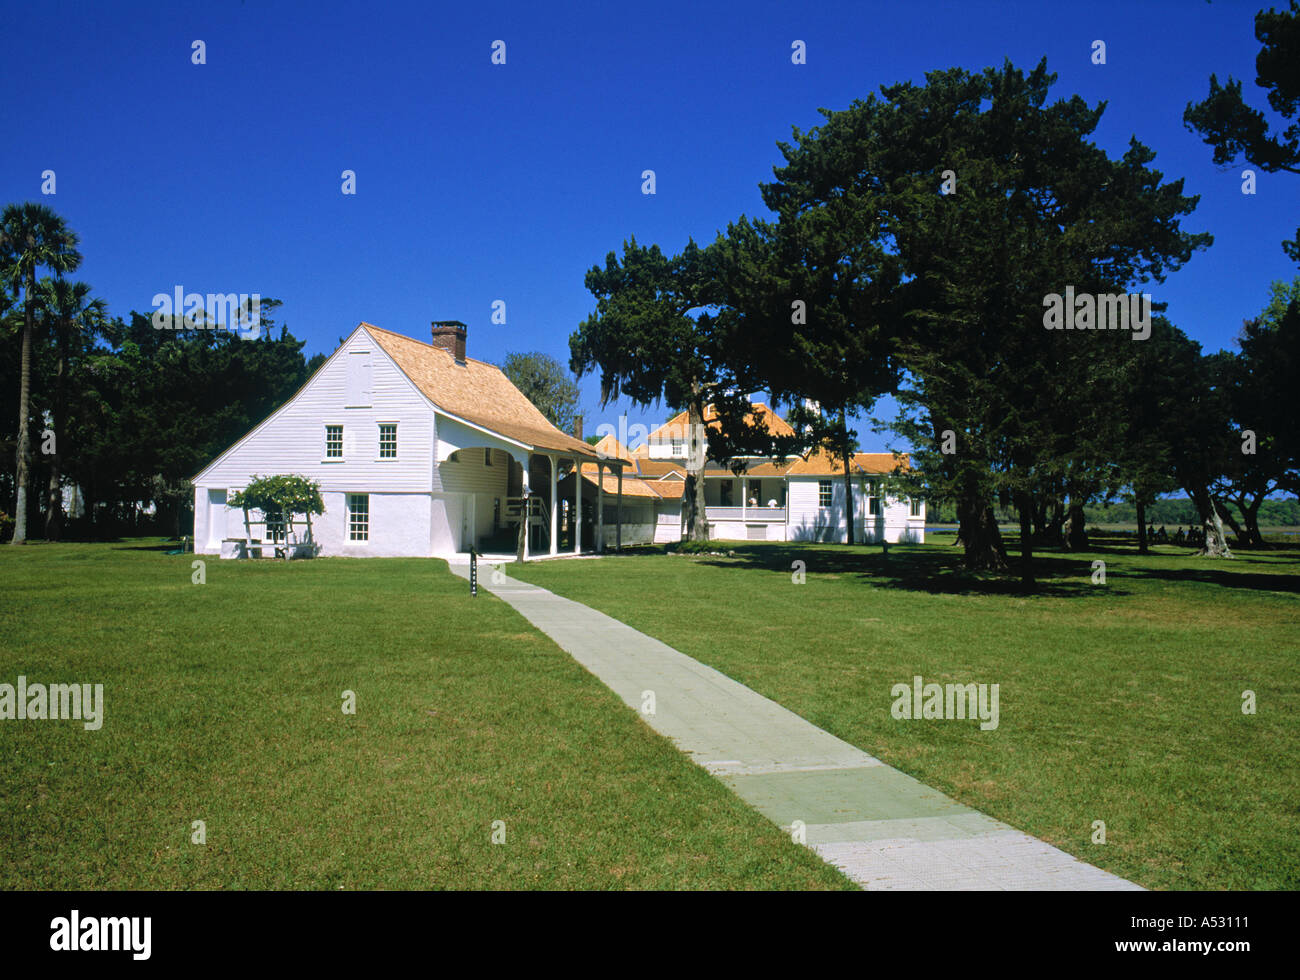 Kingsley Plantation, George Island, Florida, USA - Stock Image